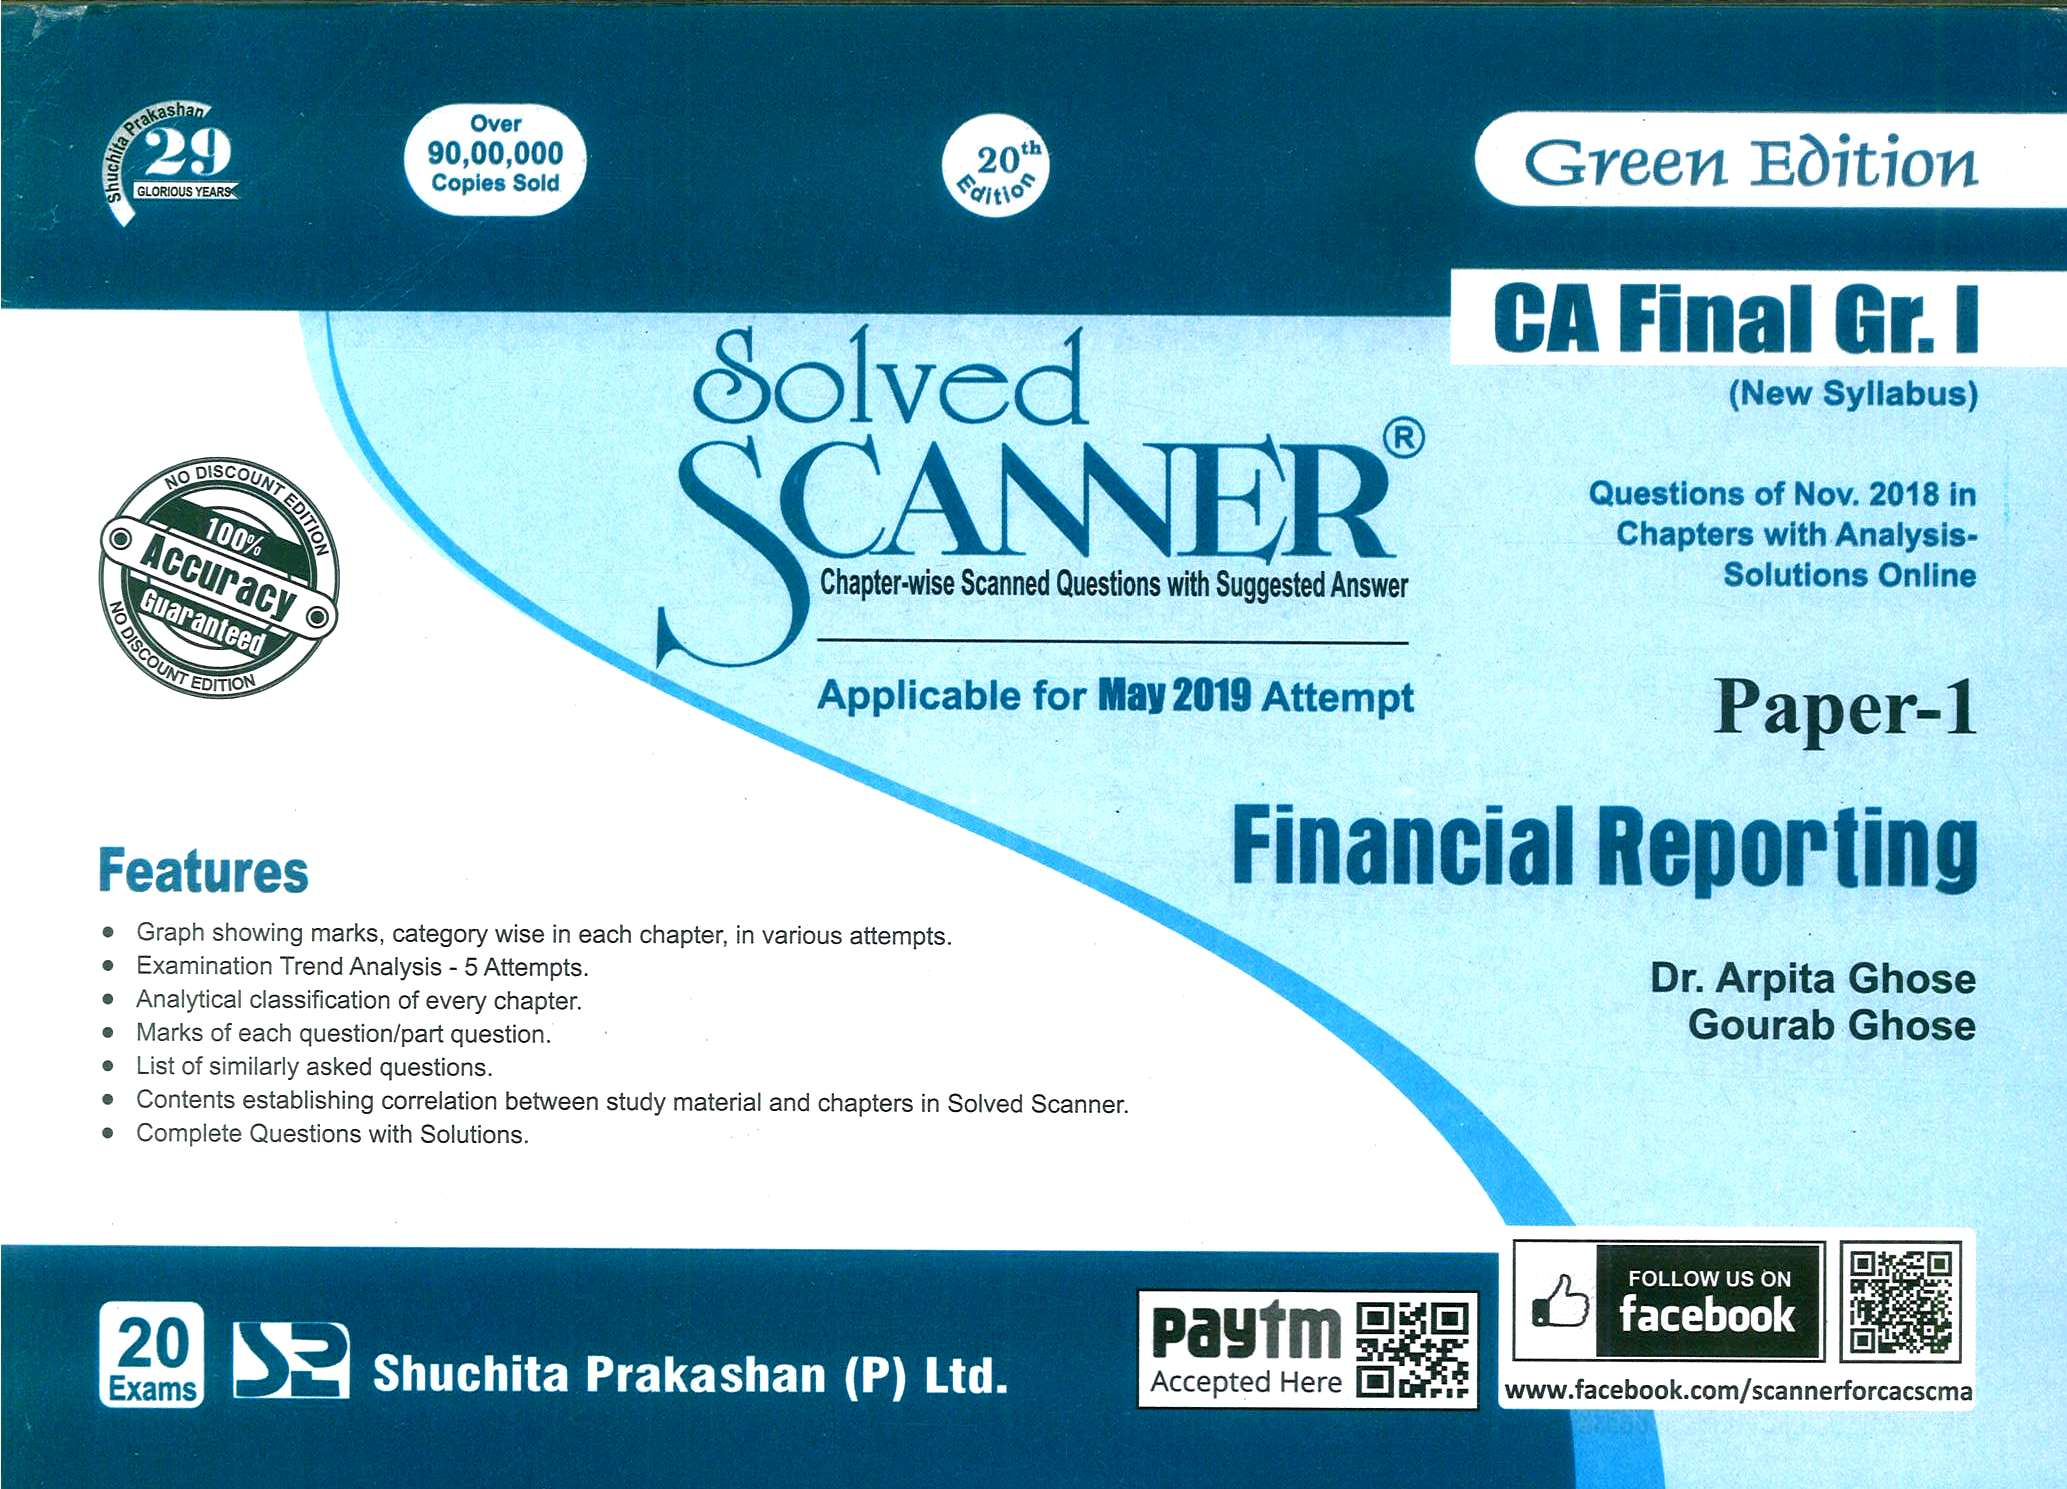 Shuchita Solved Scanner of Financial Reporting CA Final Group-I Paper-1 (Green Edition) for May 2019 Exam New Syllabus by Dr. Arpita Ghose and Gourab Ghose (Shuchita Prakashan) 2019 Edition